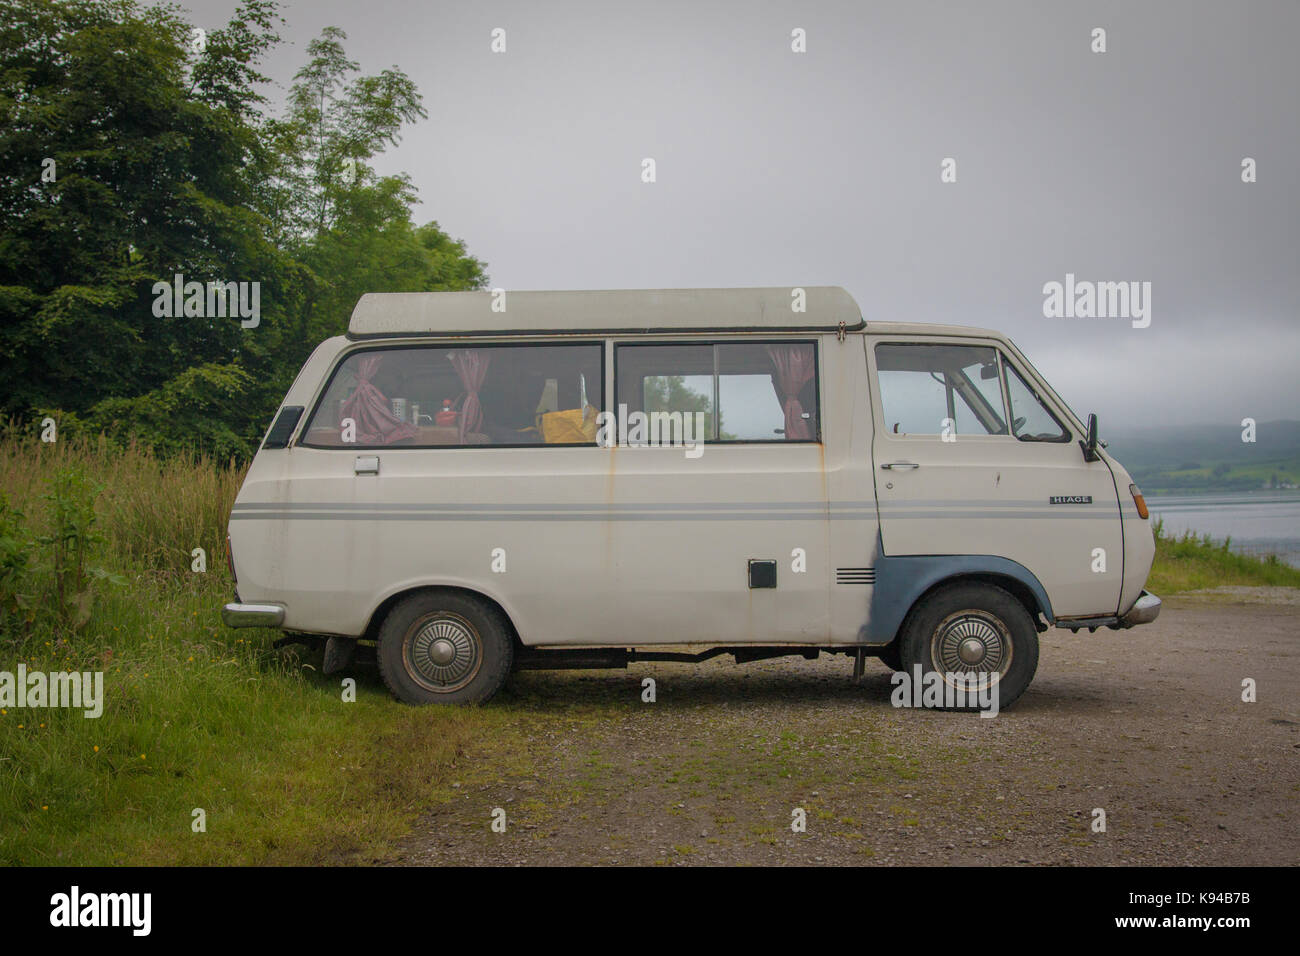 1990s Camper High Resolution Stock Photography And Images Alamy